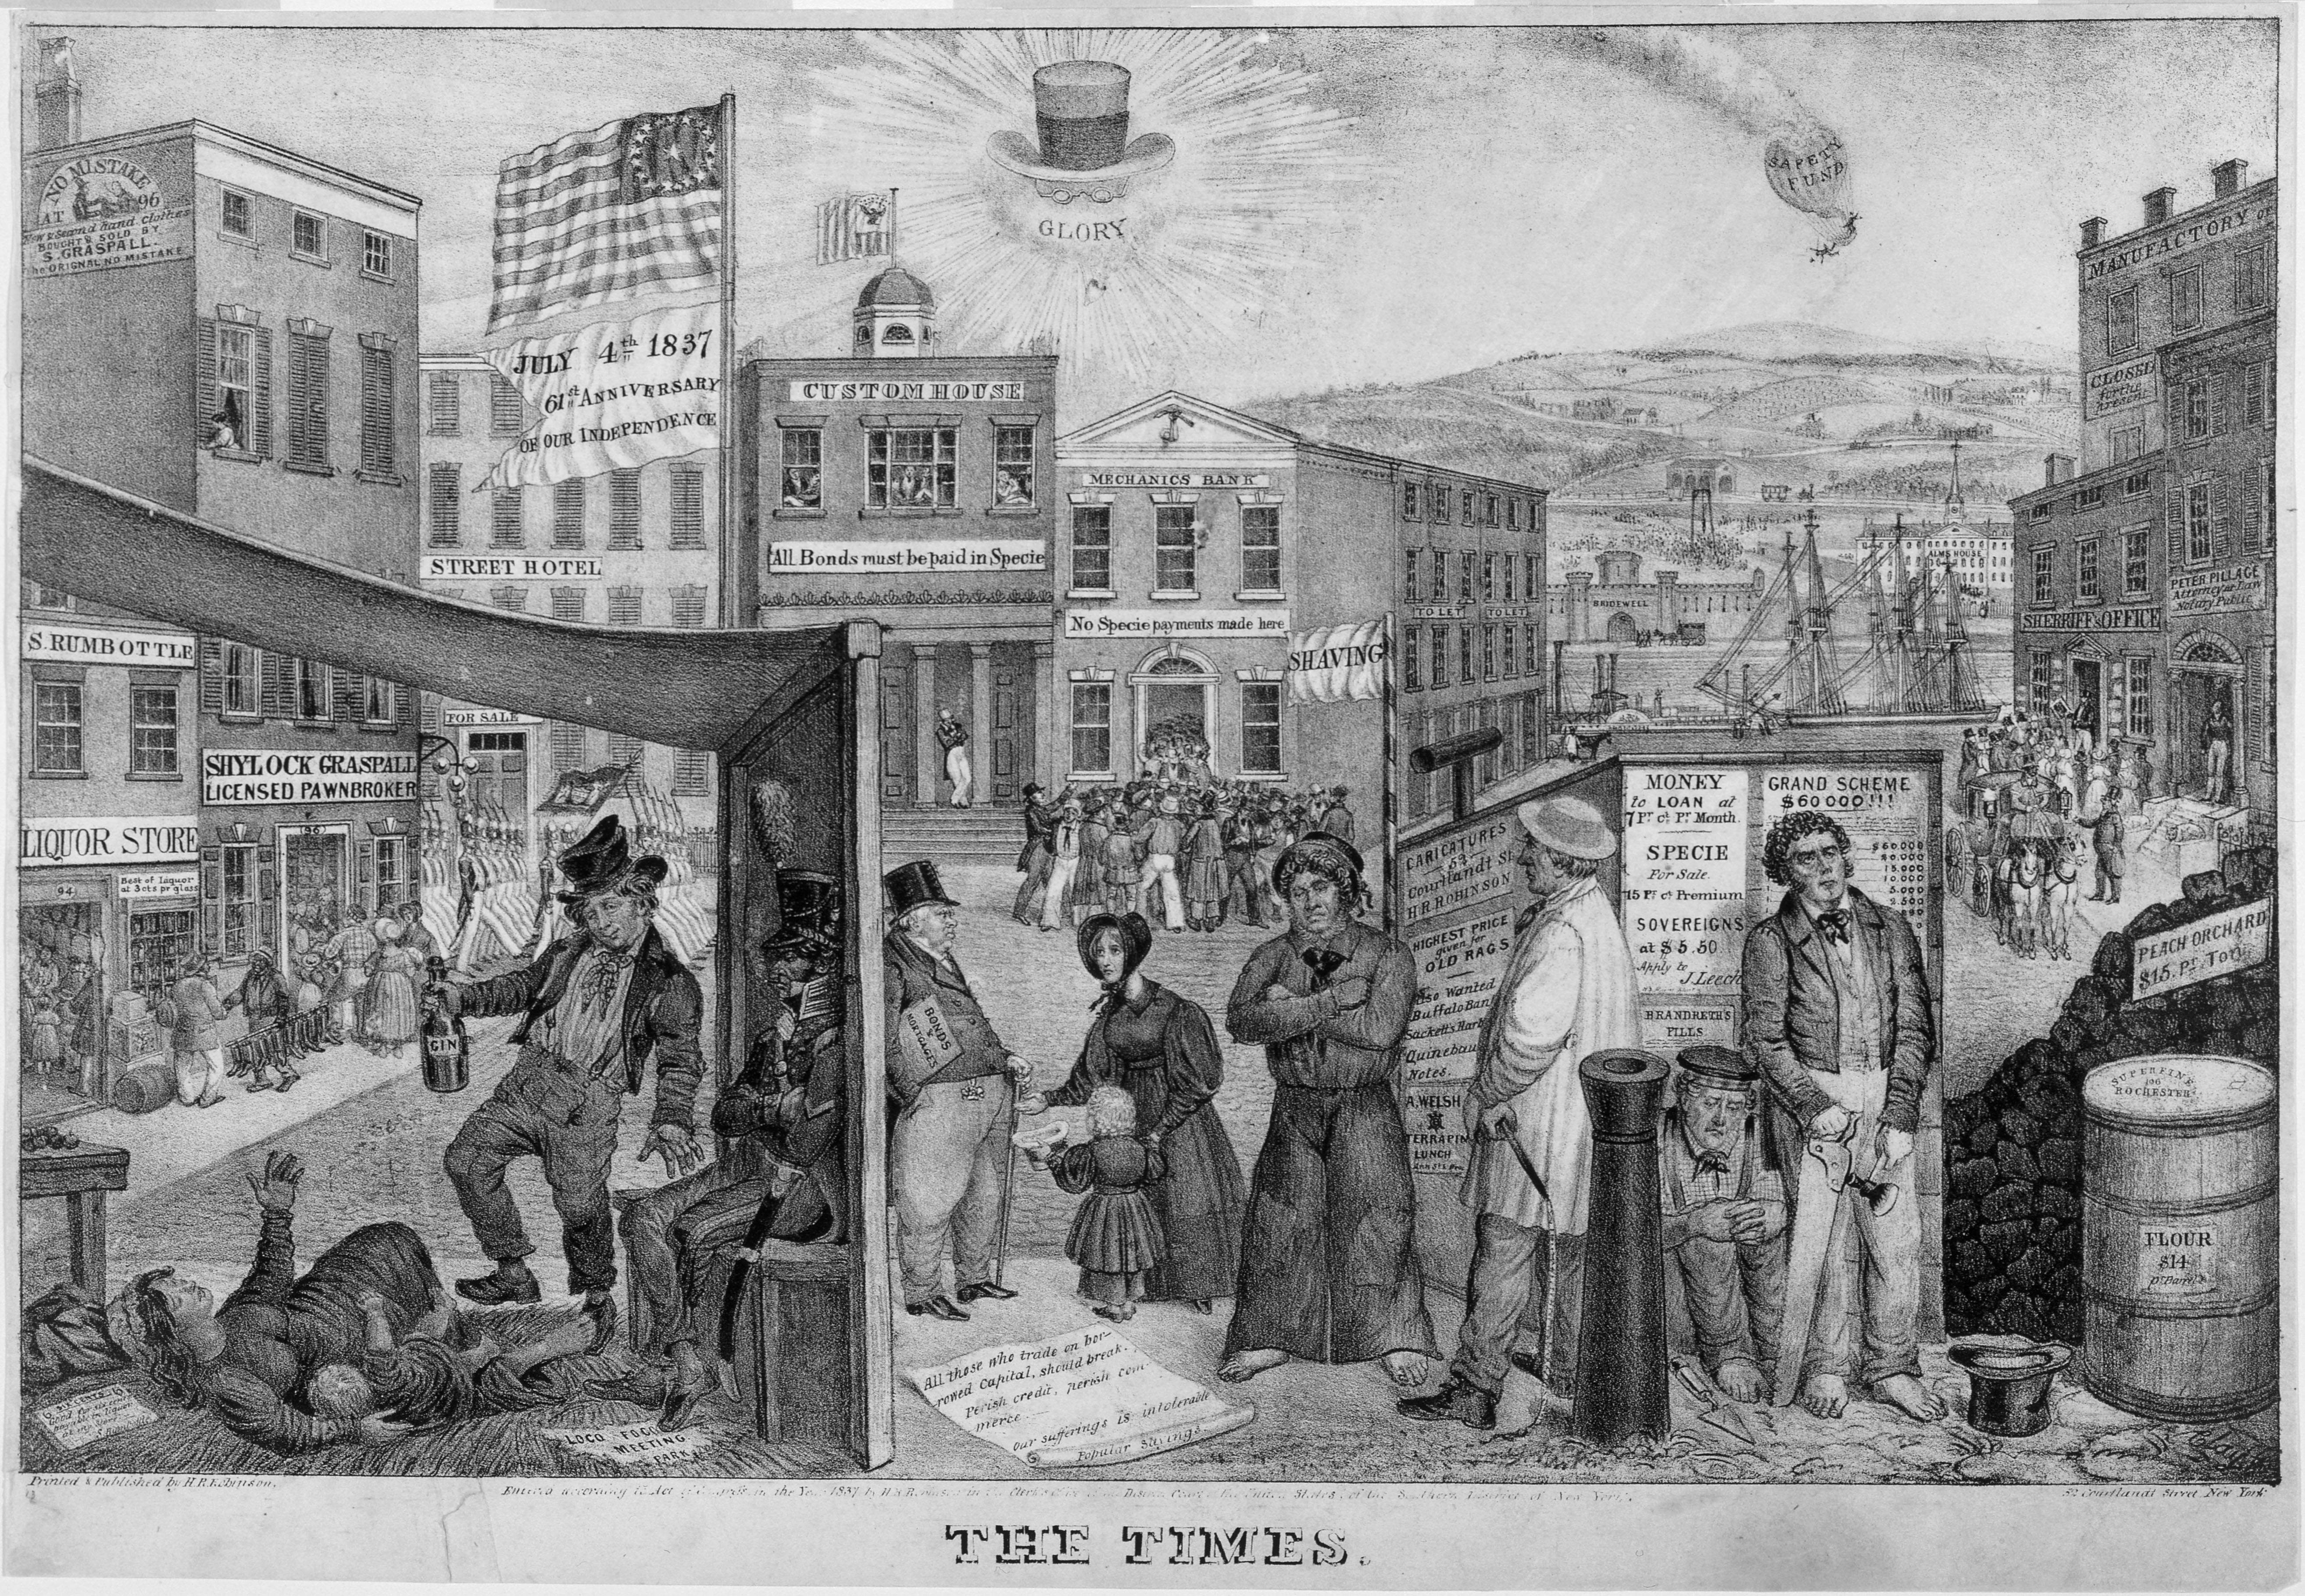 Pen drawing of the Panic of 1837 showing men, women, and children in an American city.